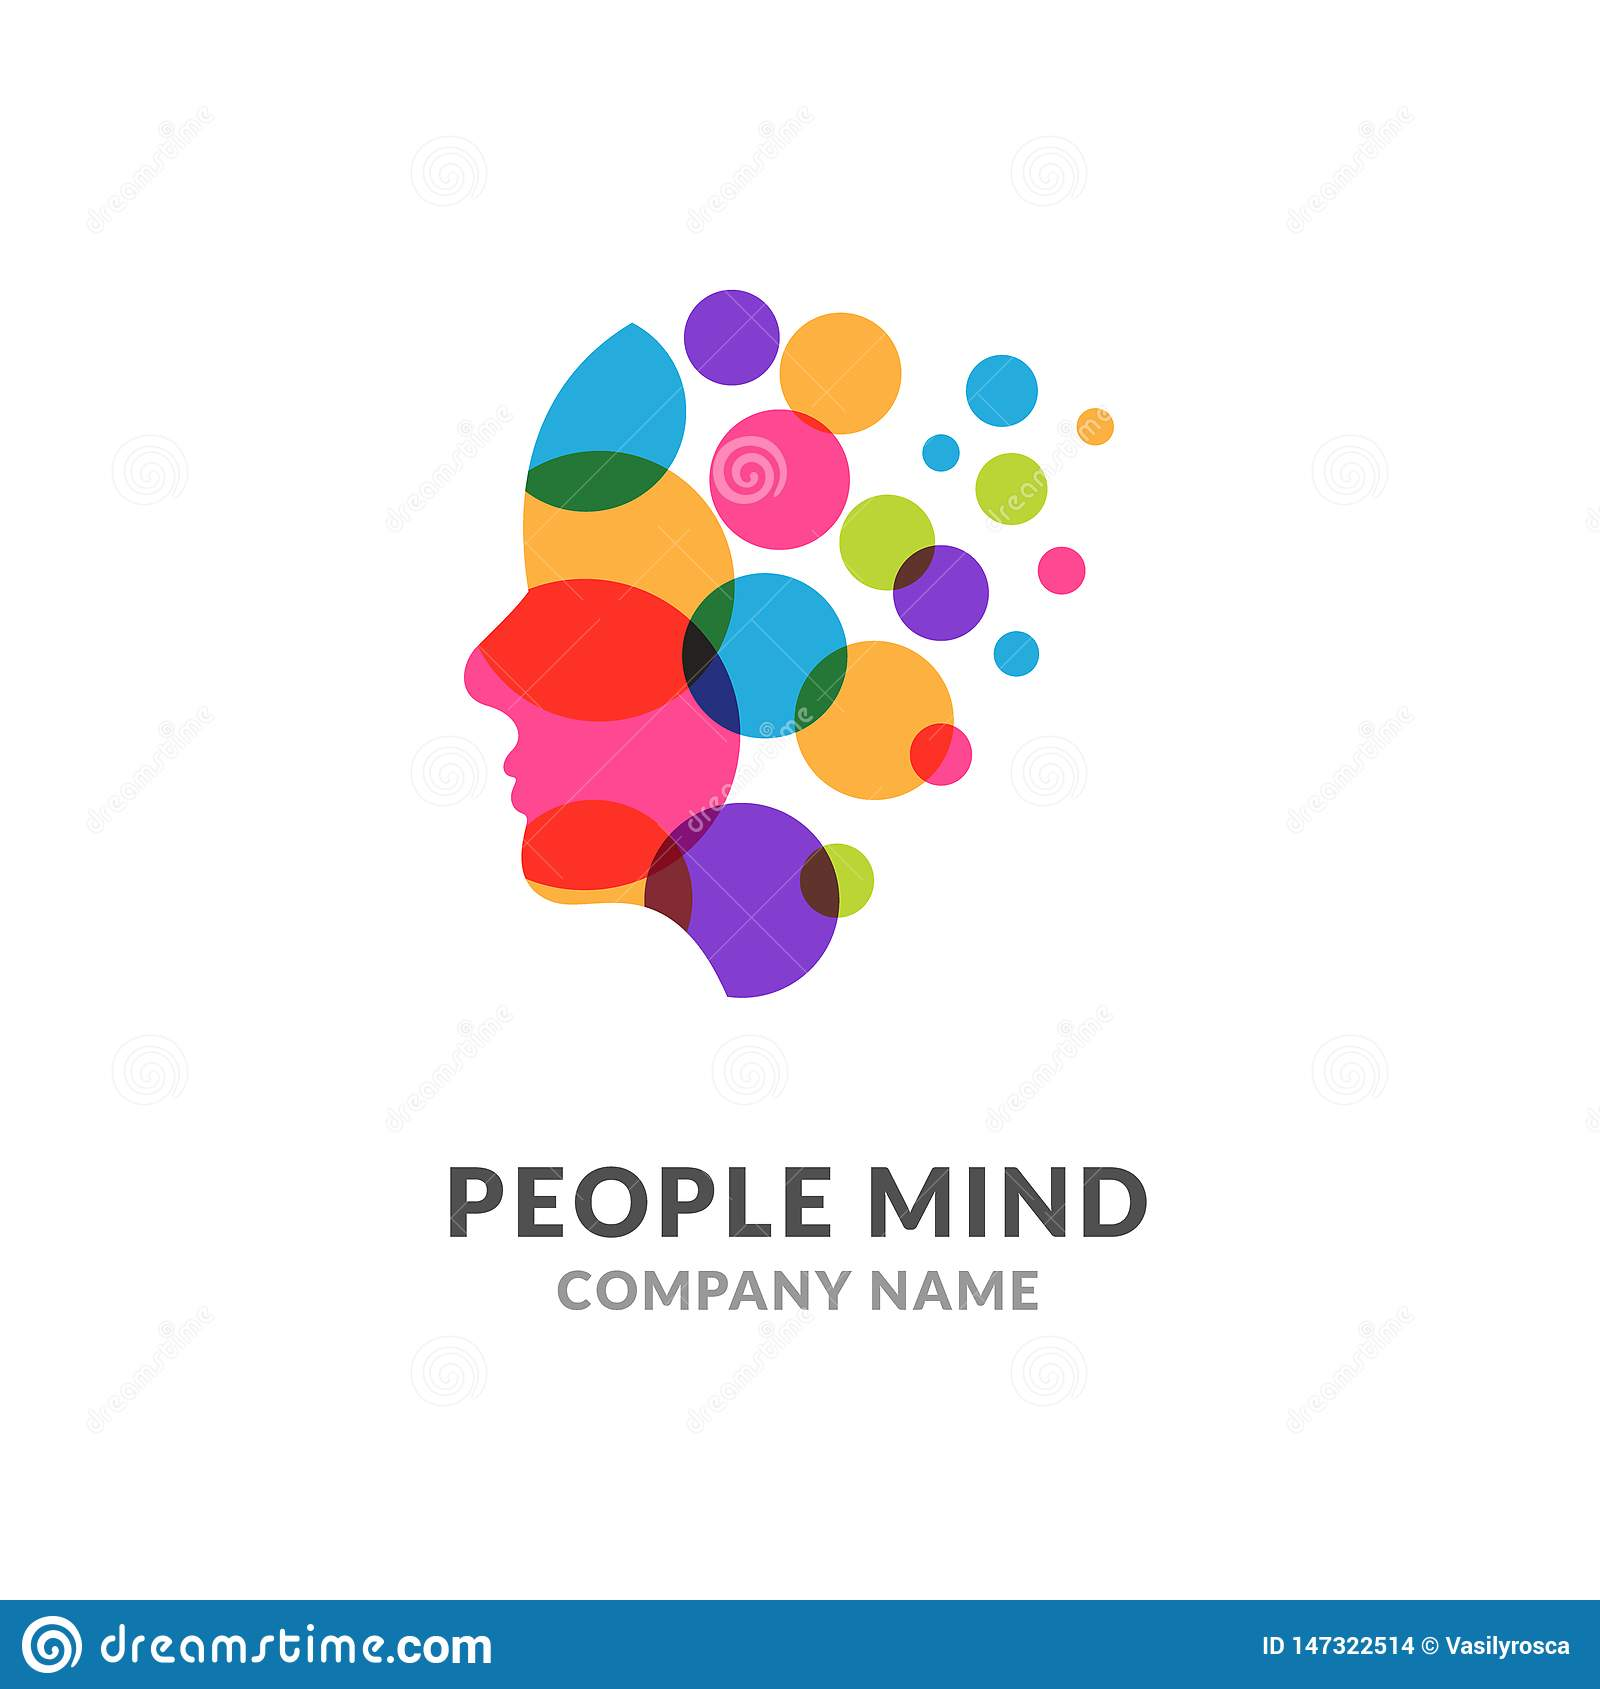 Human head face logo, creative brain man. Digital profile face innovation intelligence mind design logo